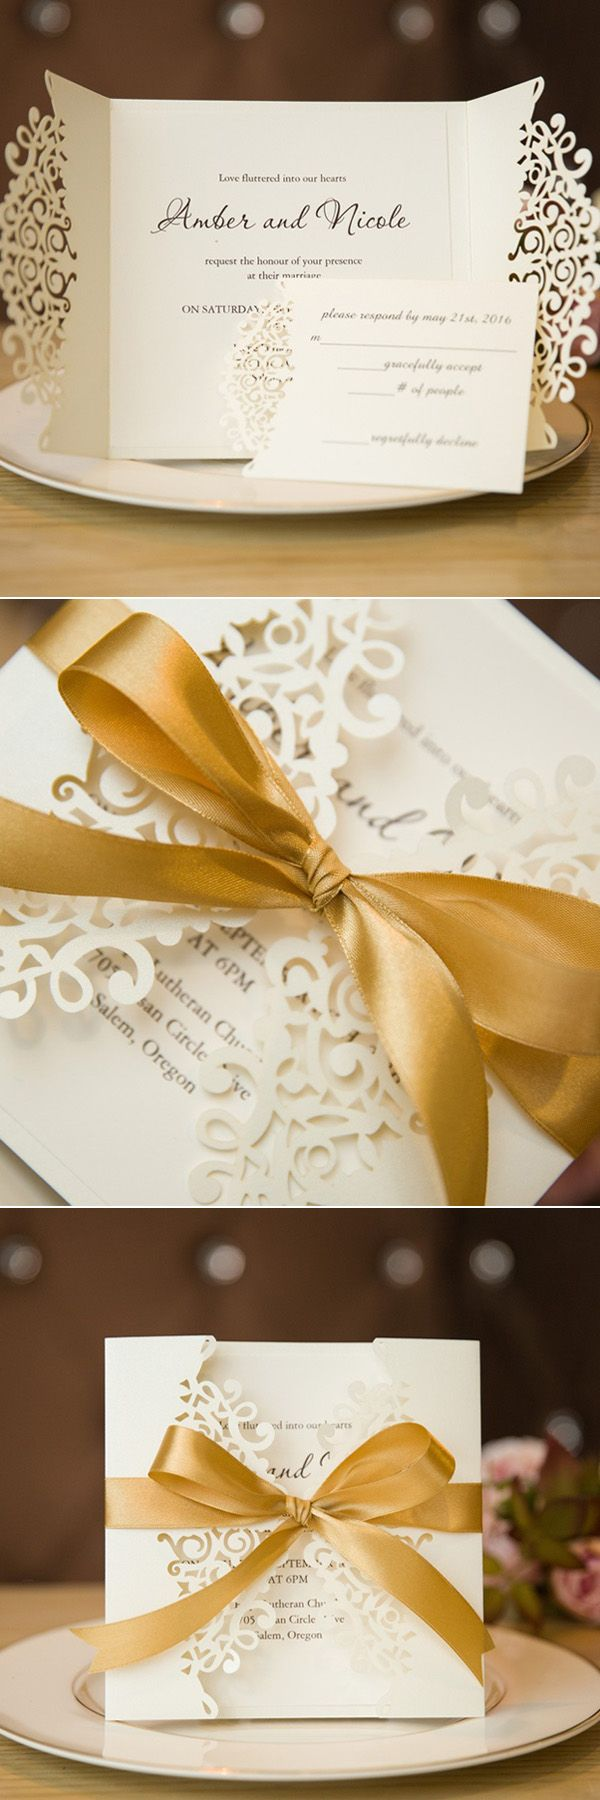 elegant laser cut wedding invitations with gold